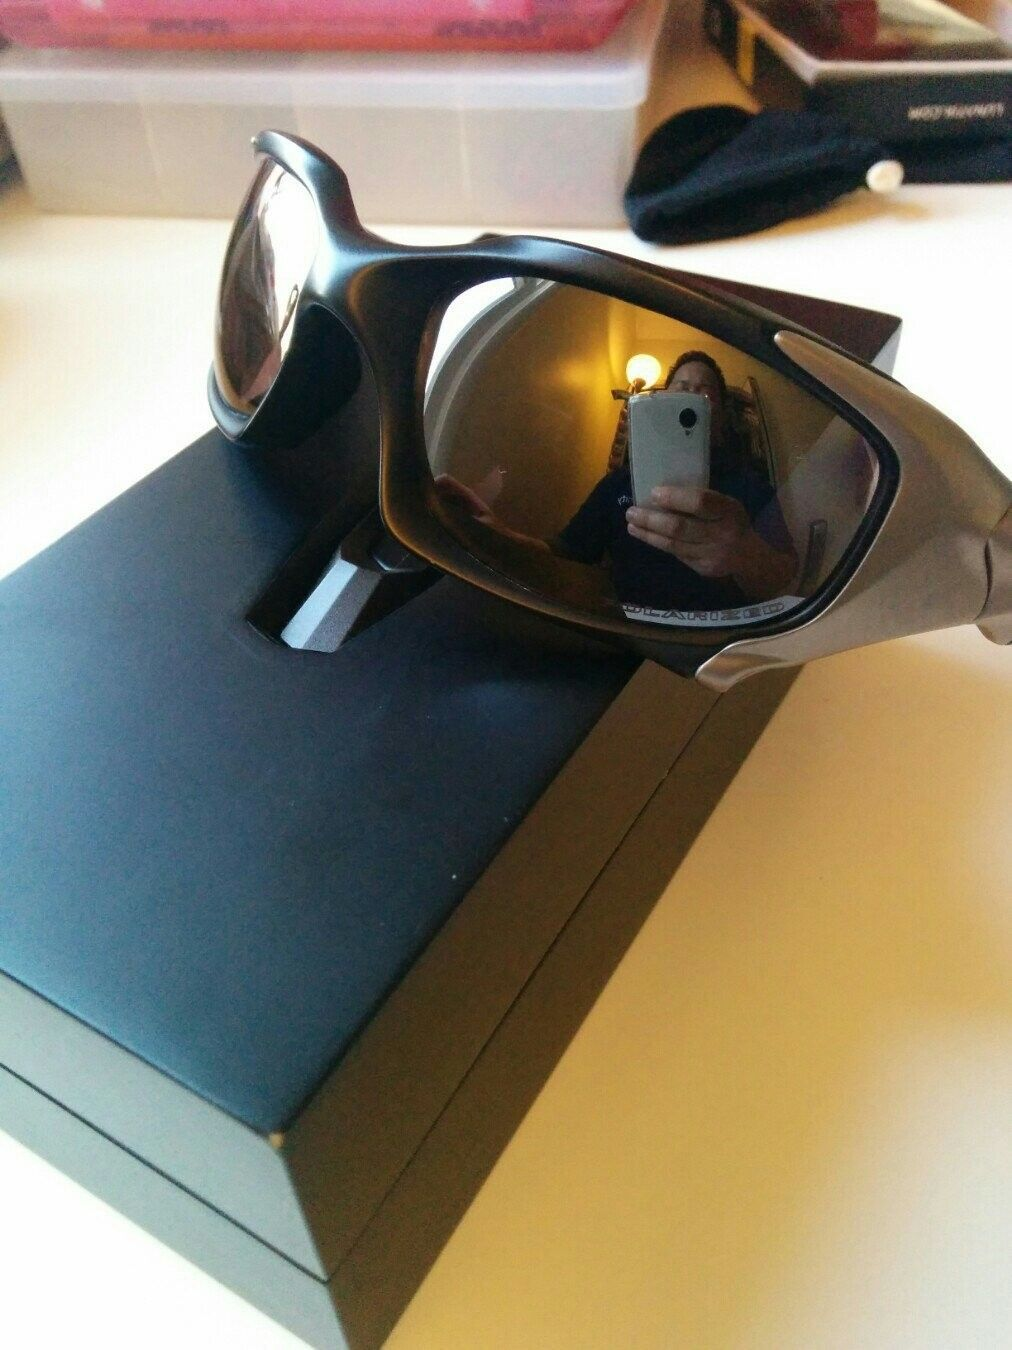 Matte Black PB1with Custom Cut 00 Bip Lenses - ry4usava.jpg